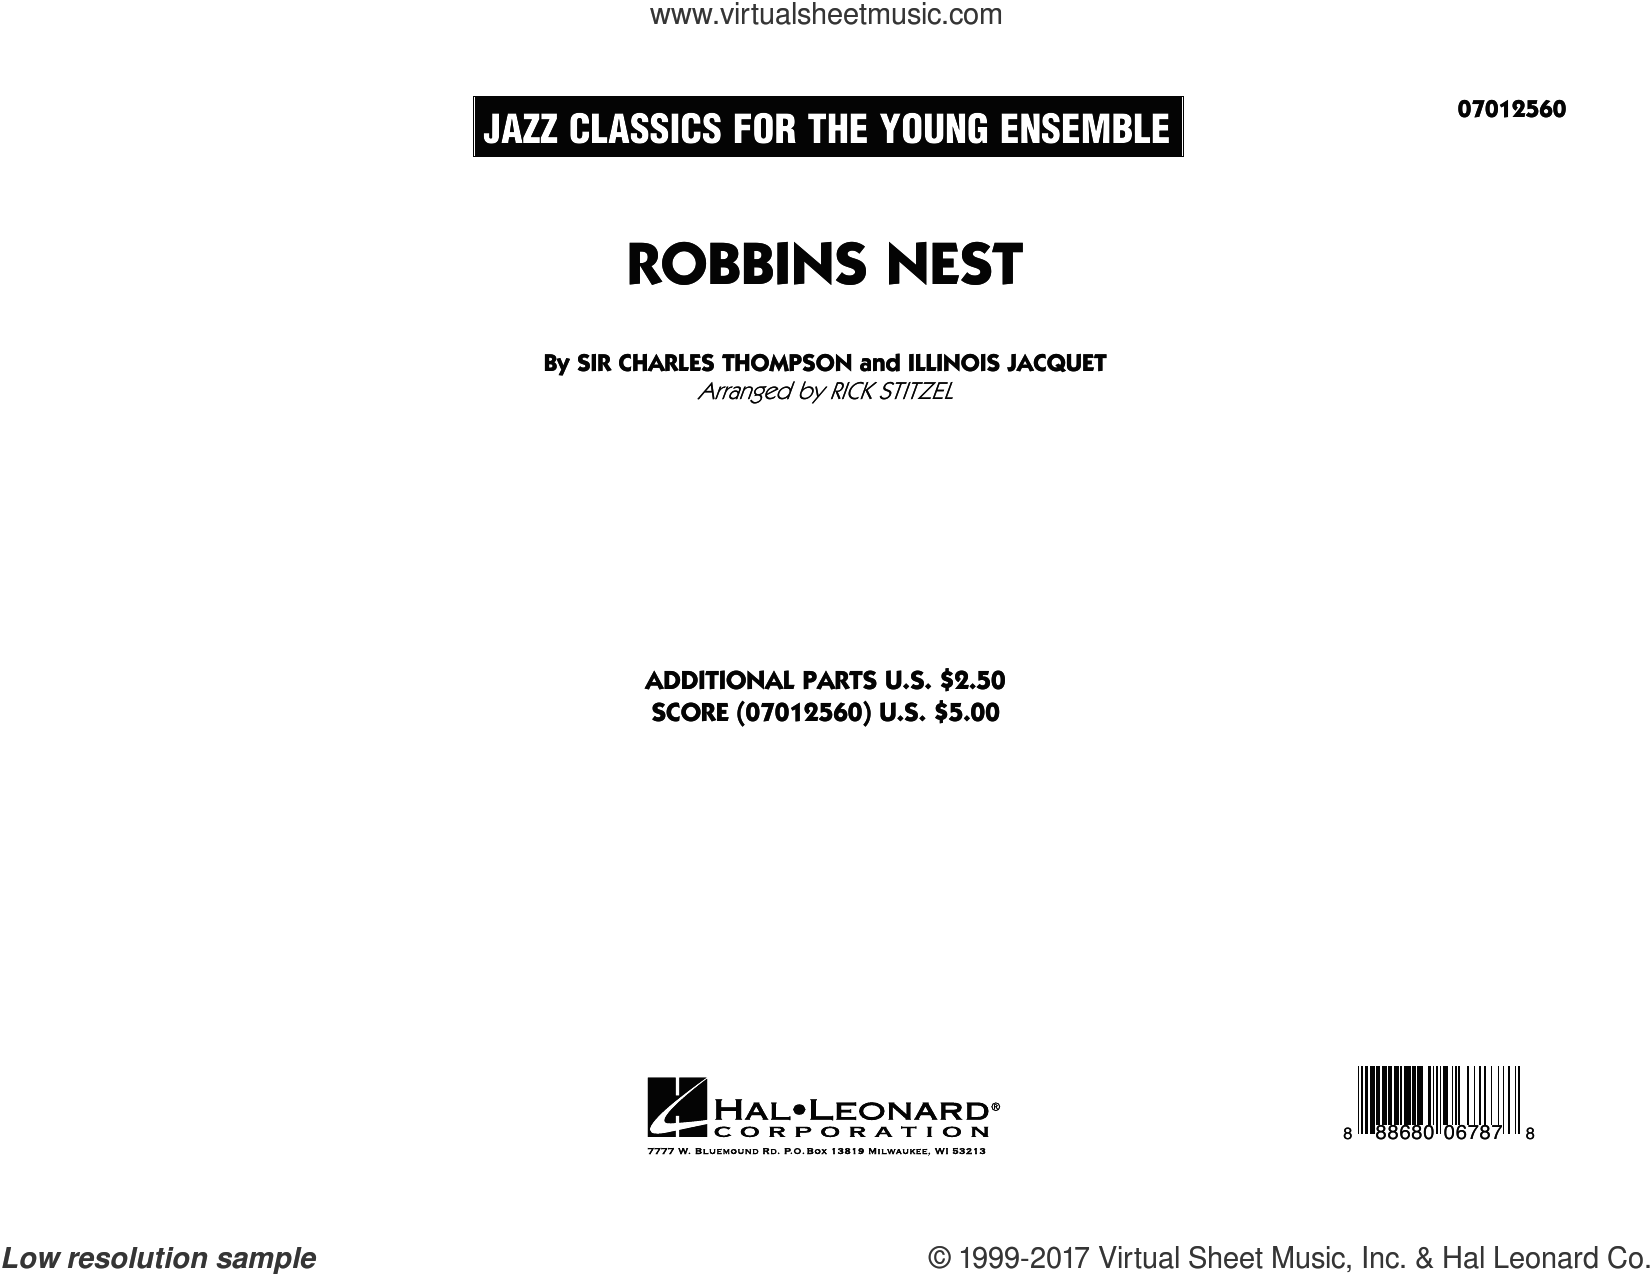 Robbins Nest (COMPLETE) sheet music for jazz band by Rick Stitzel, Illinois Jacquet and Sir Charles Thompson, intermediate skill level